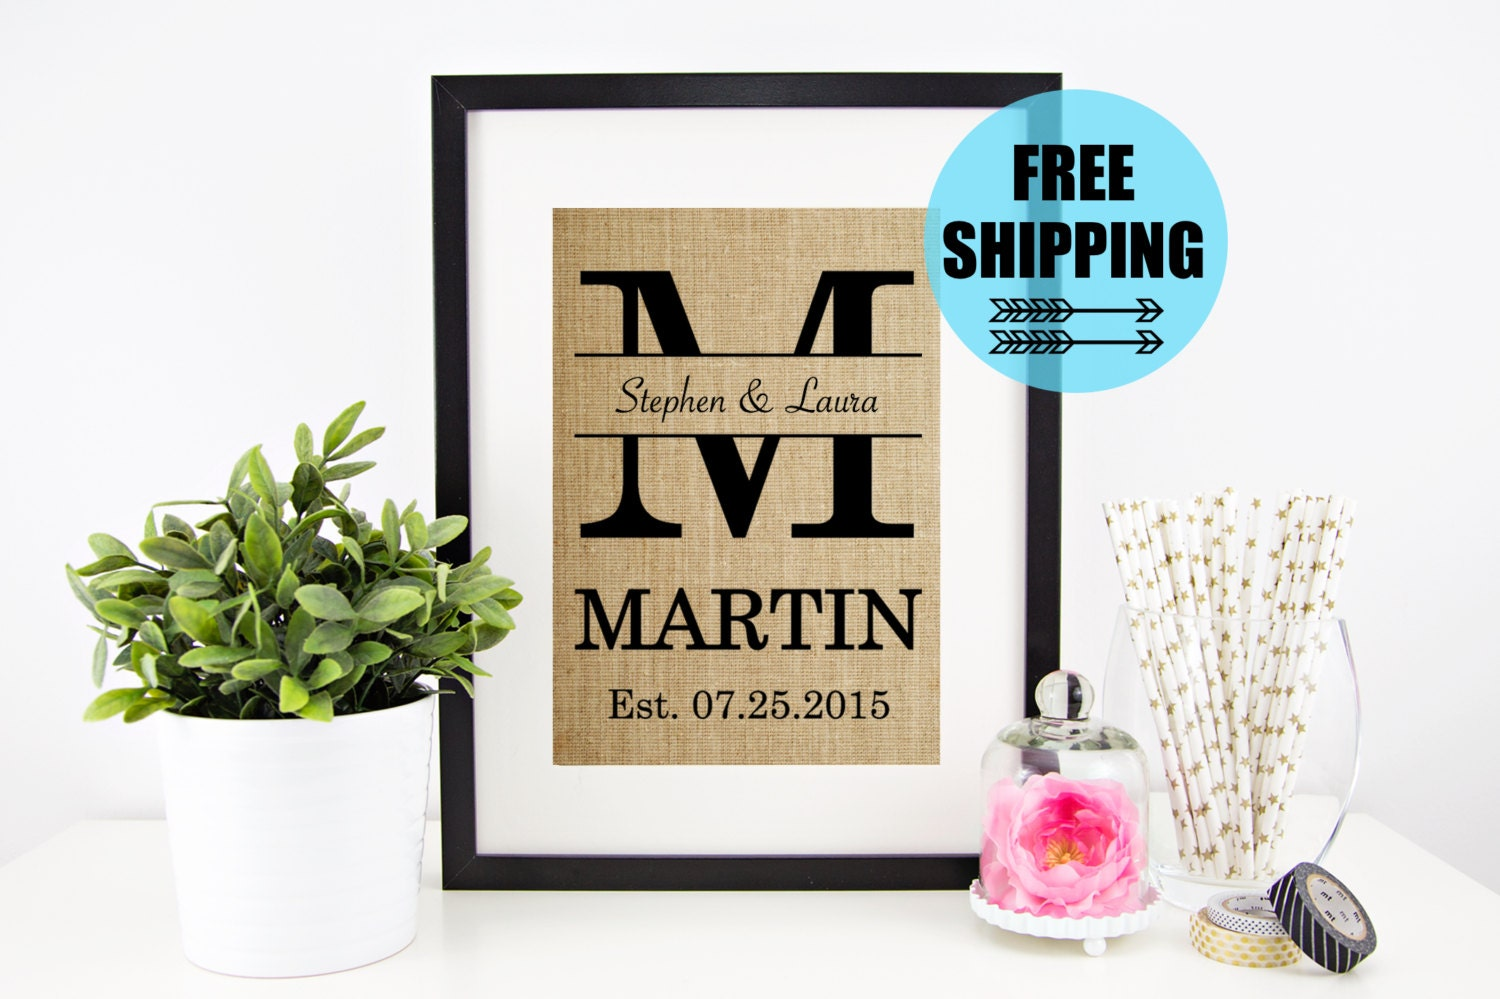 Personalized Wedding Gifts For The Couple : ON SALE Personalized Wedding Gift for Couple Bridal Shower